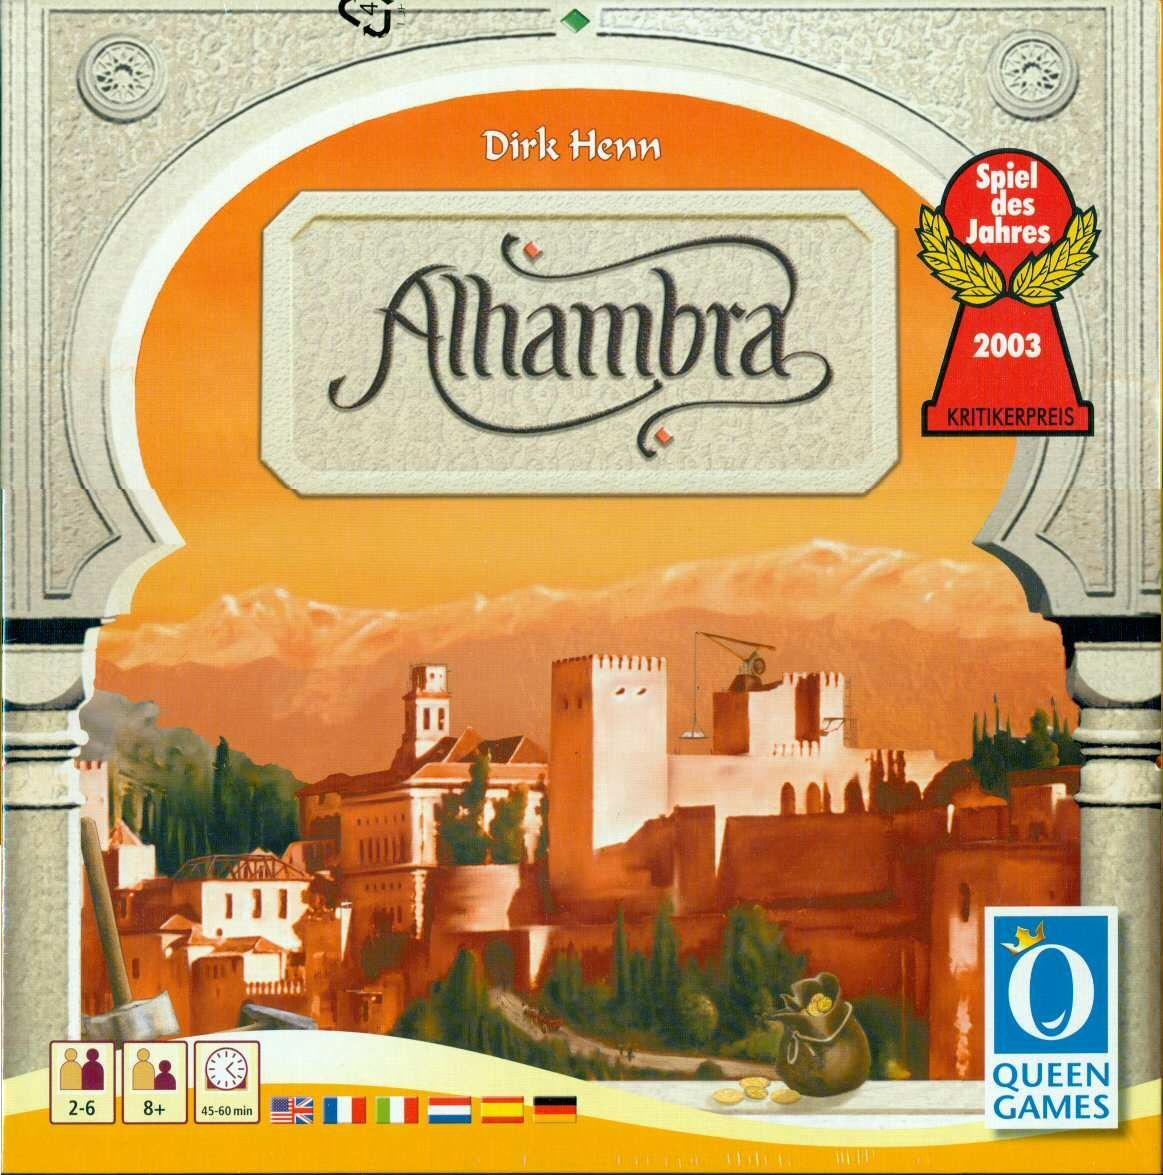 Main image for Alhambra board game